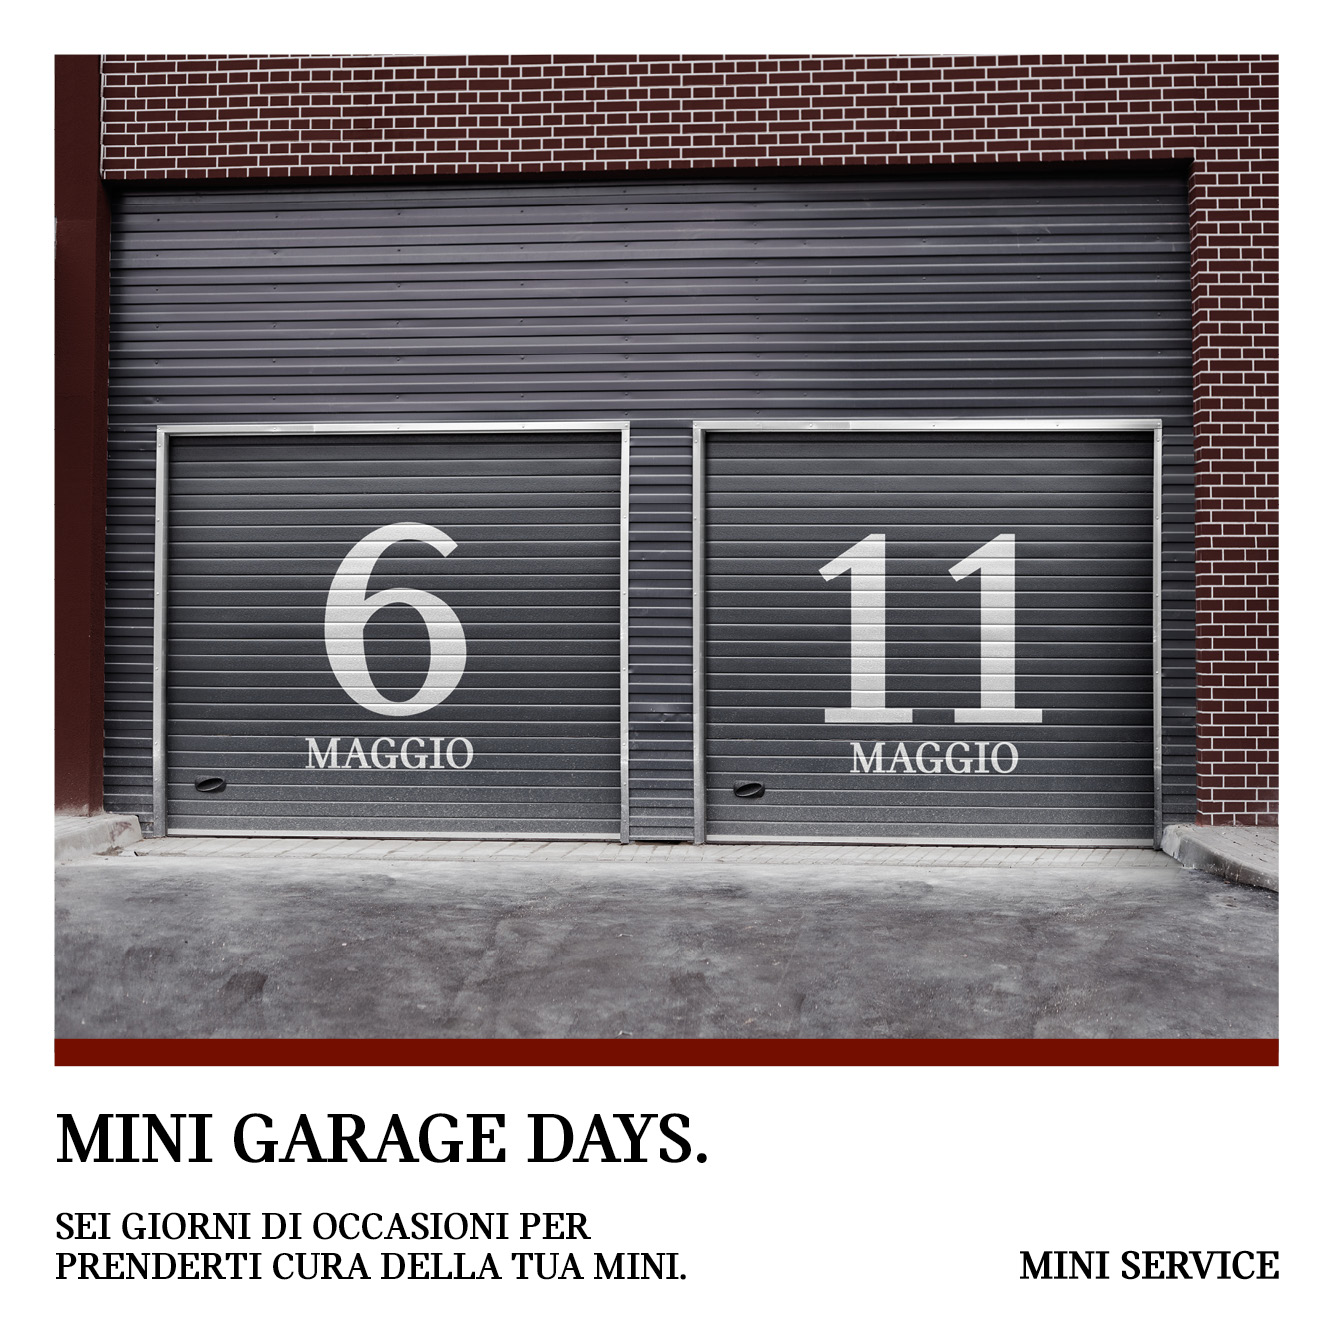 106078 MINI GARAGE DAYS 6 11 MAGGIO POST FB 1000x1000 54FVgKc